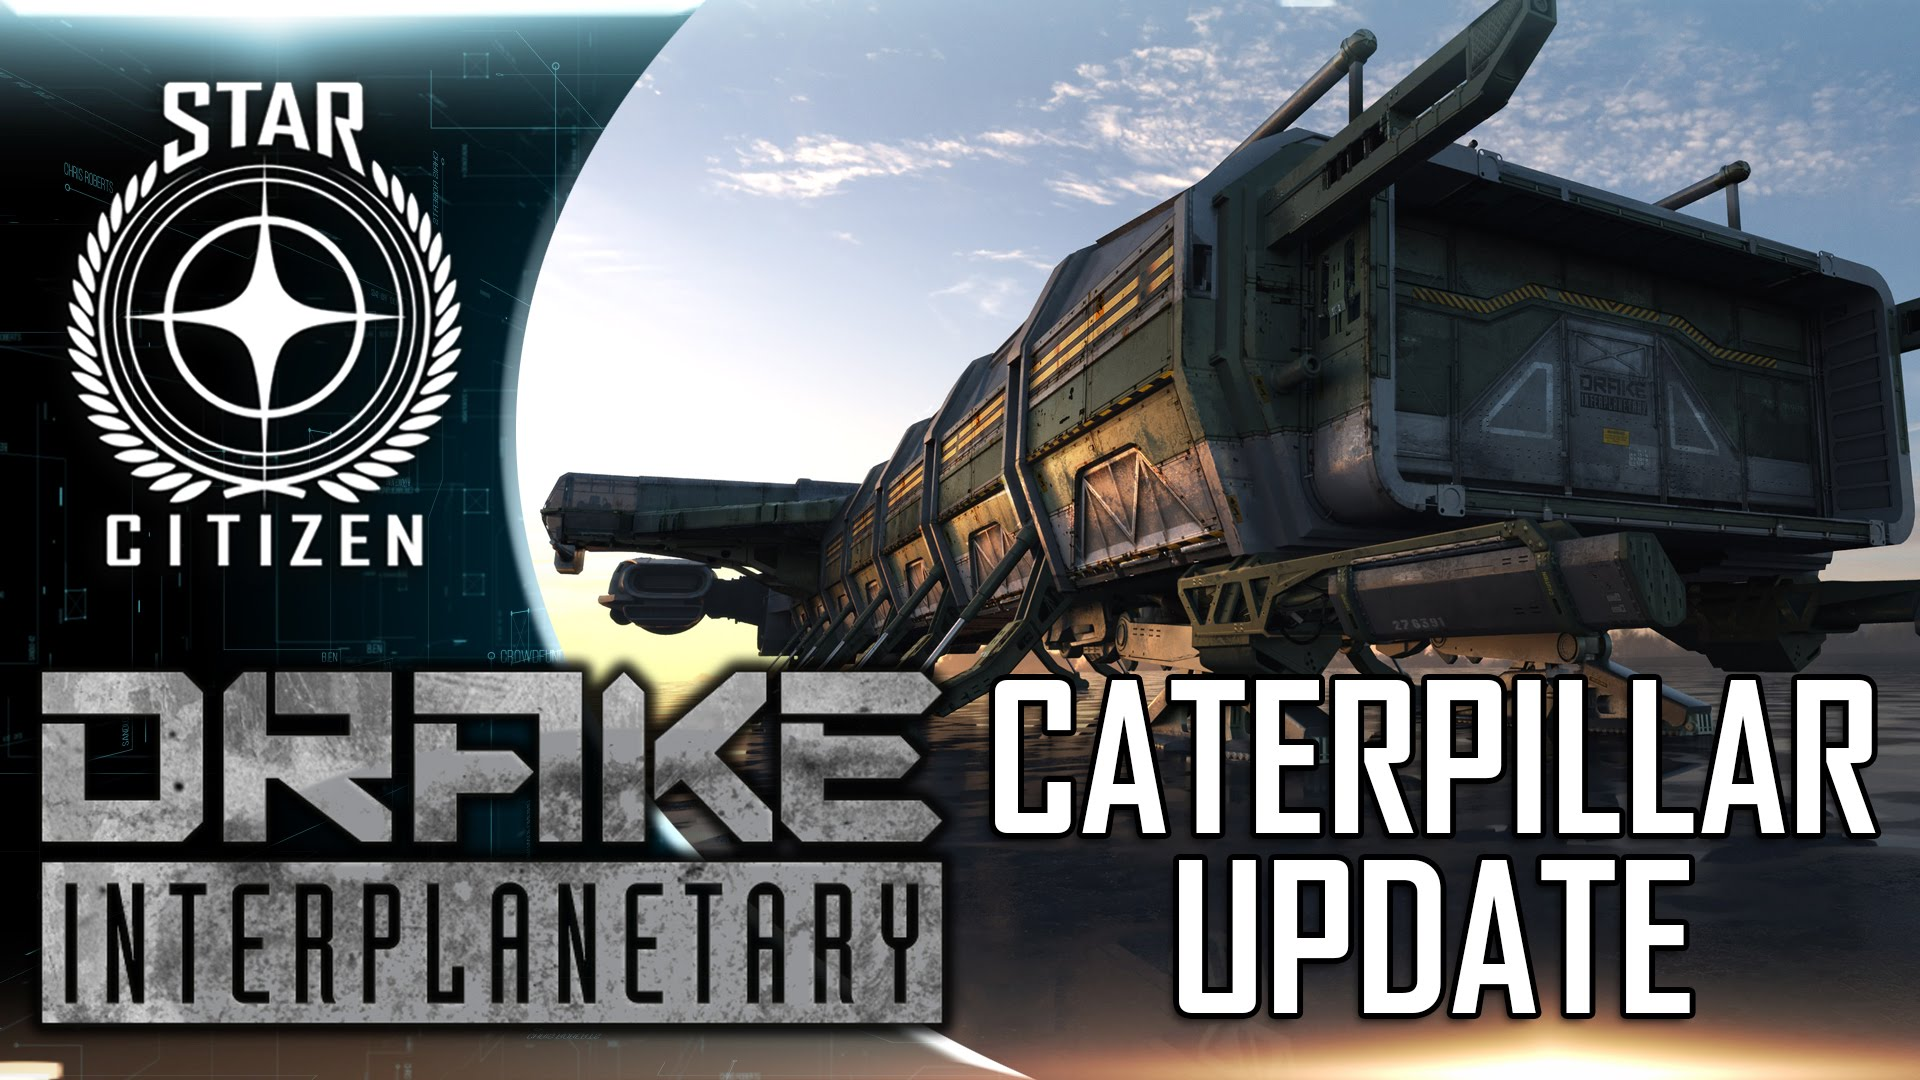 Star Citizen: Drake Caterpillar Update